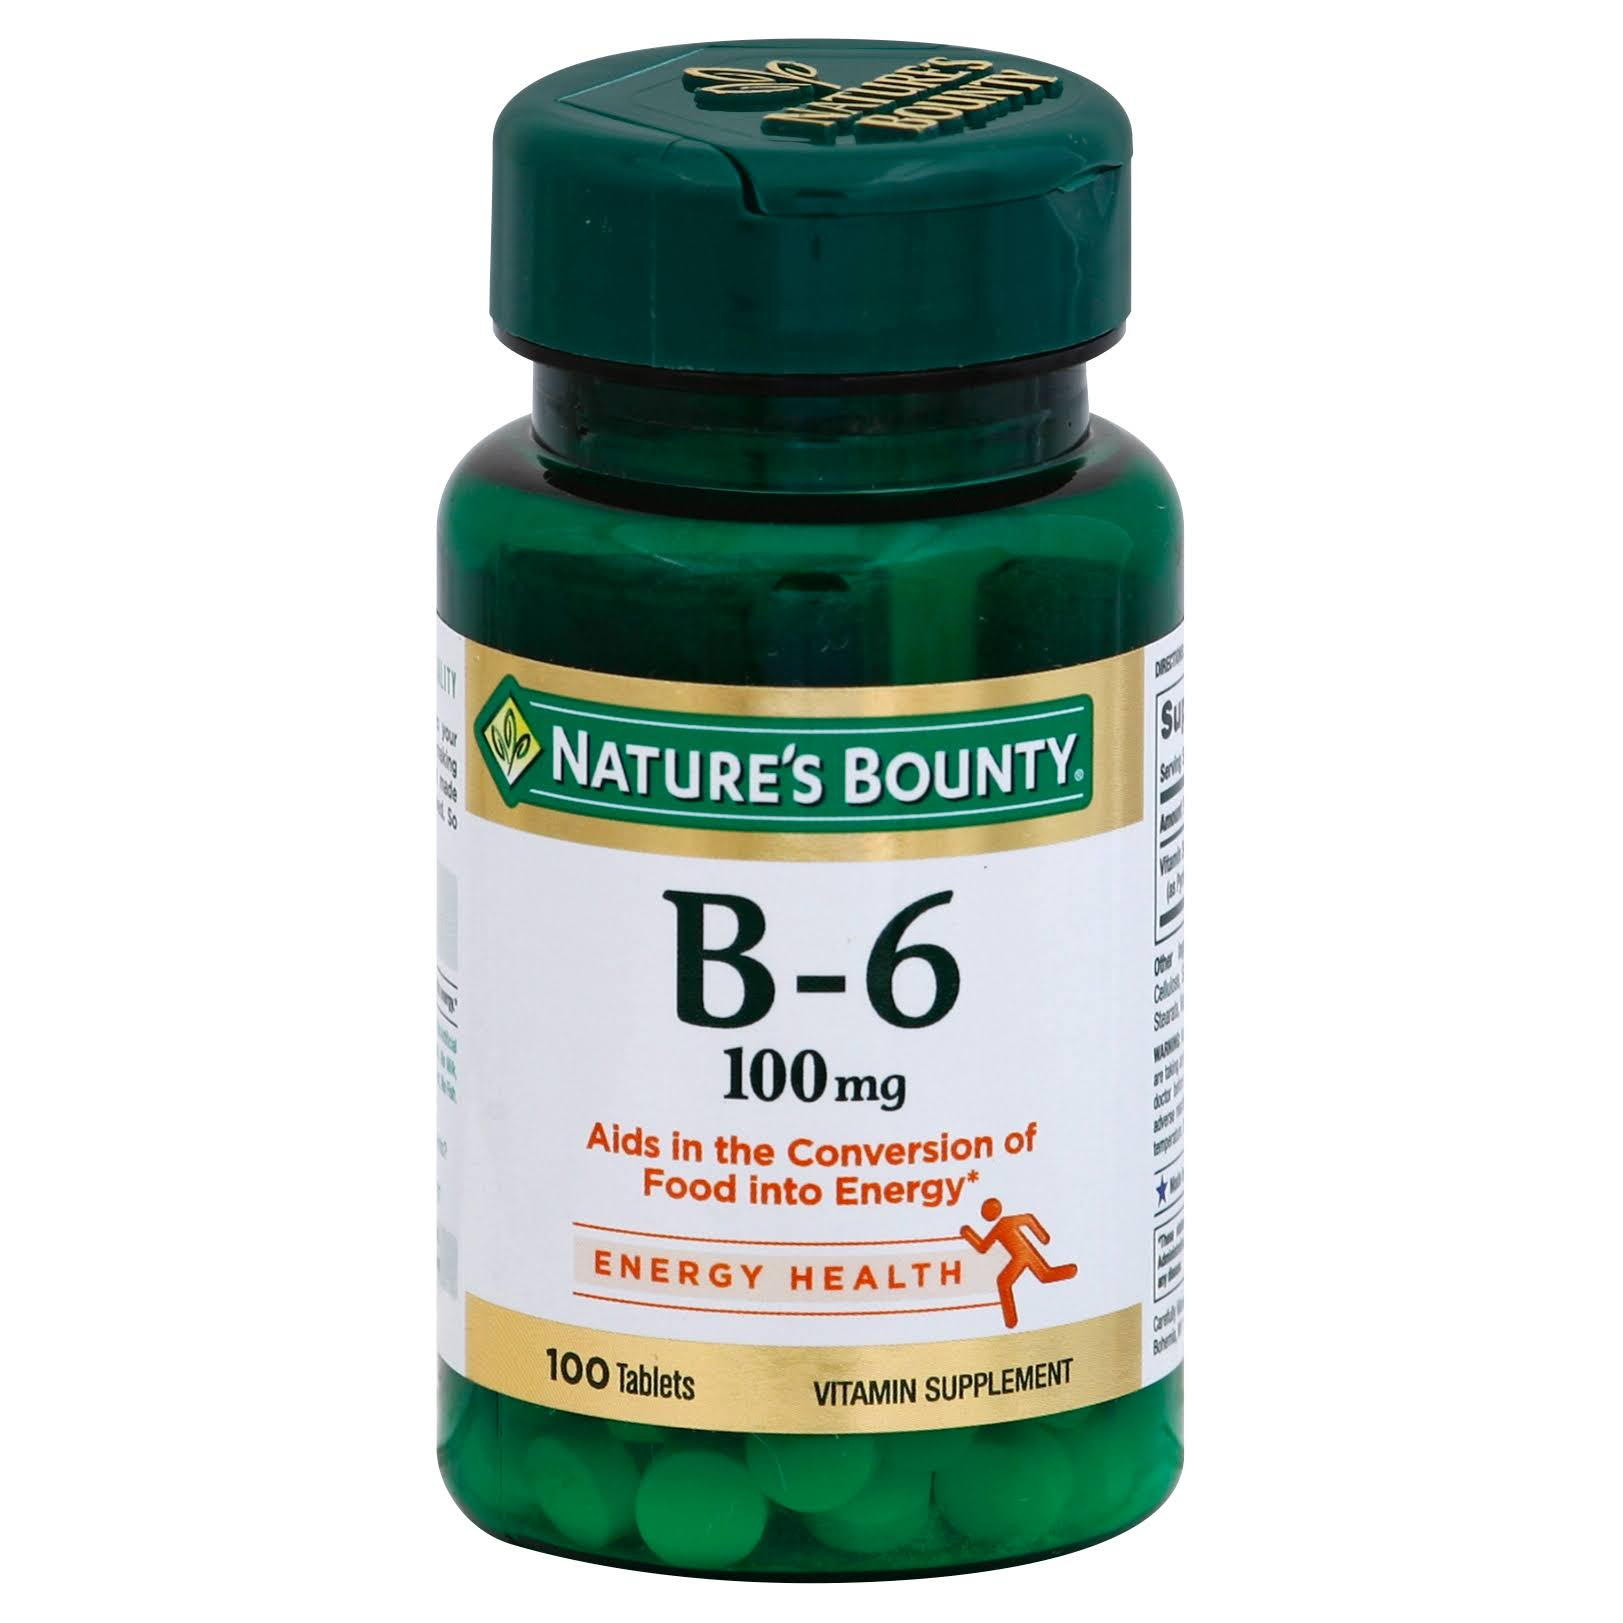 Nature's Bounty Vitamin B-6 - 100mg, 100 Tablets